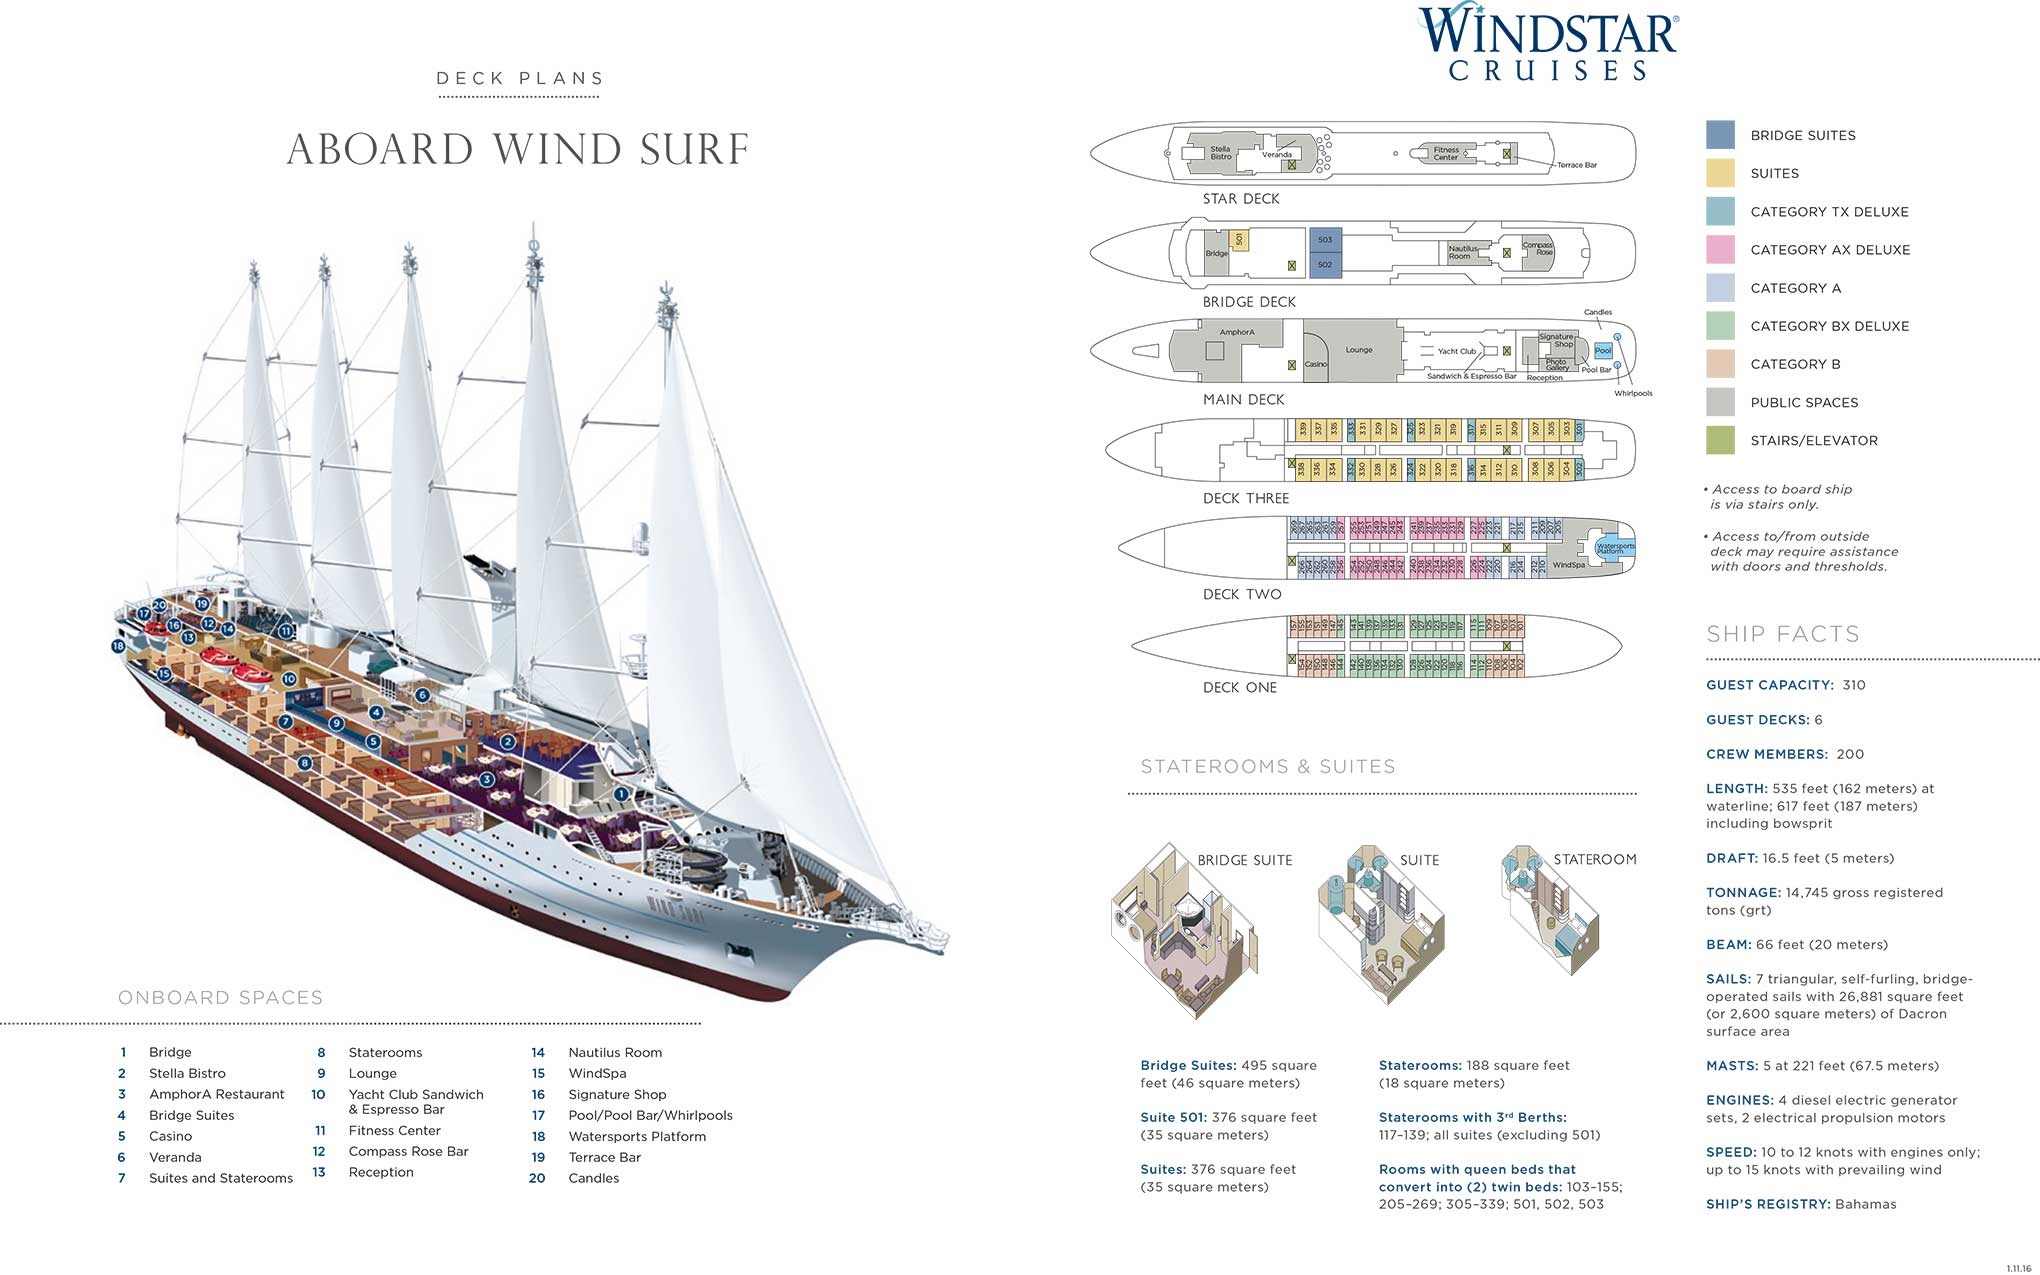 Wind surf cruise review yachtsmans caribbean ann cavitt fisher wind surf deck plan courtesy of windstar pooptronica Choice Image